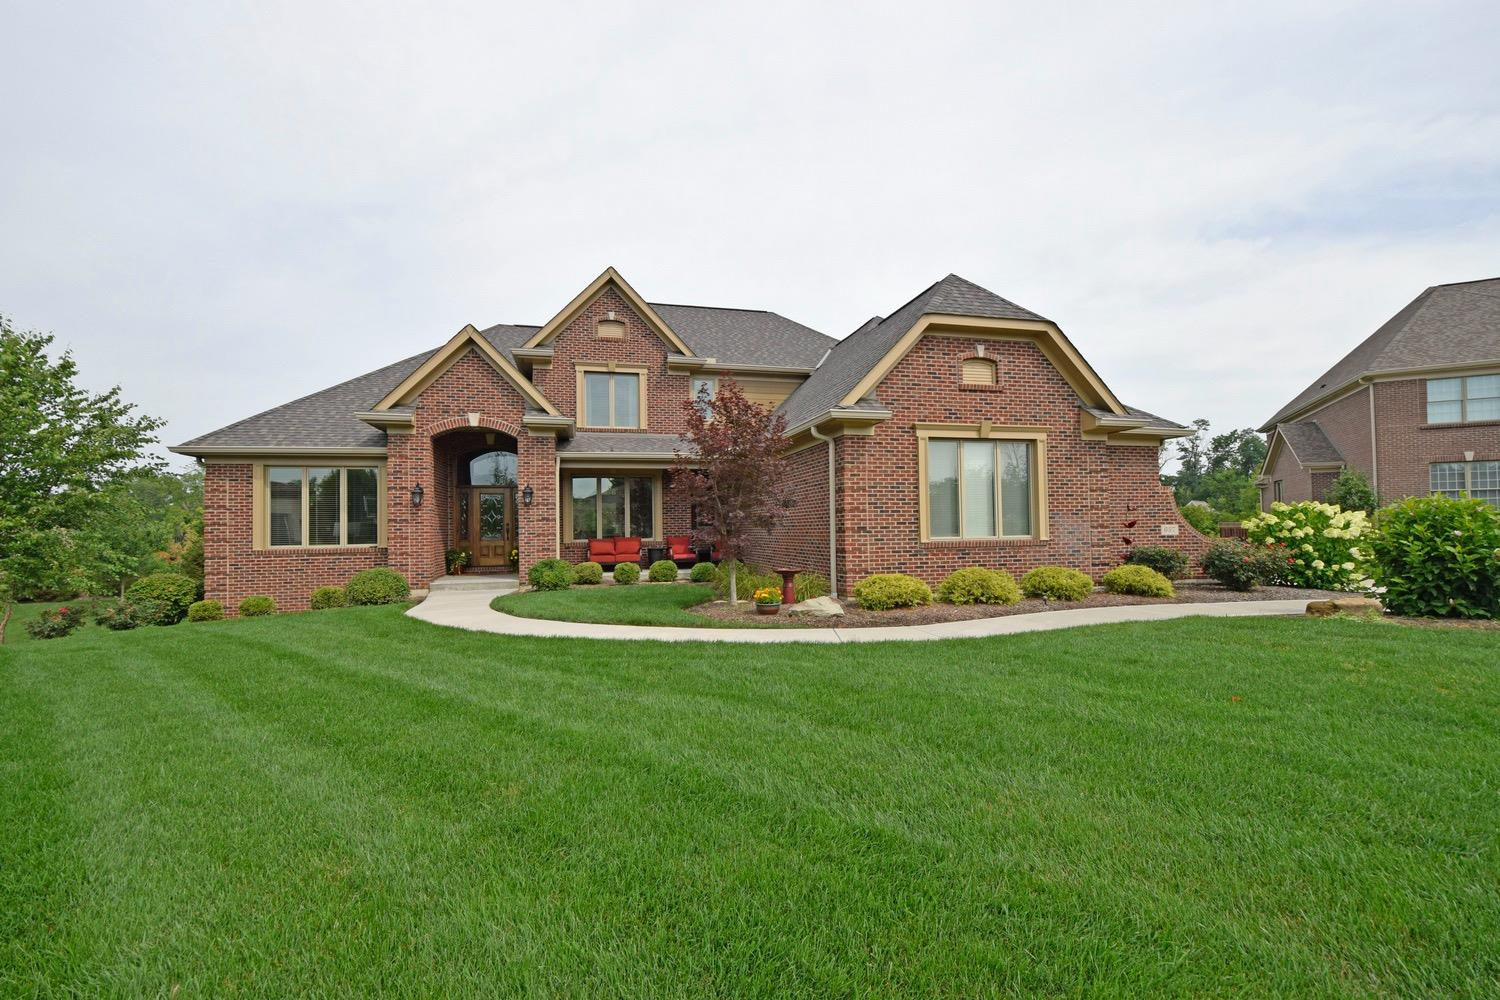 657 Copper Cove Court, Miami Twp, OH 45140